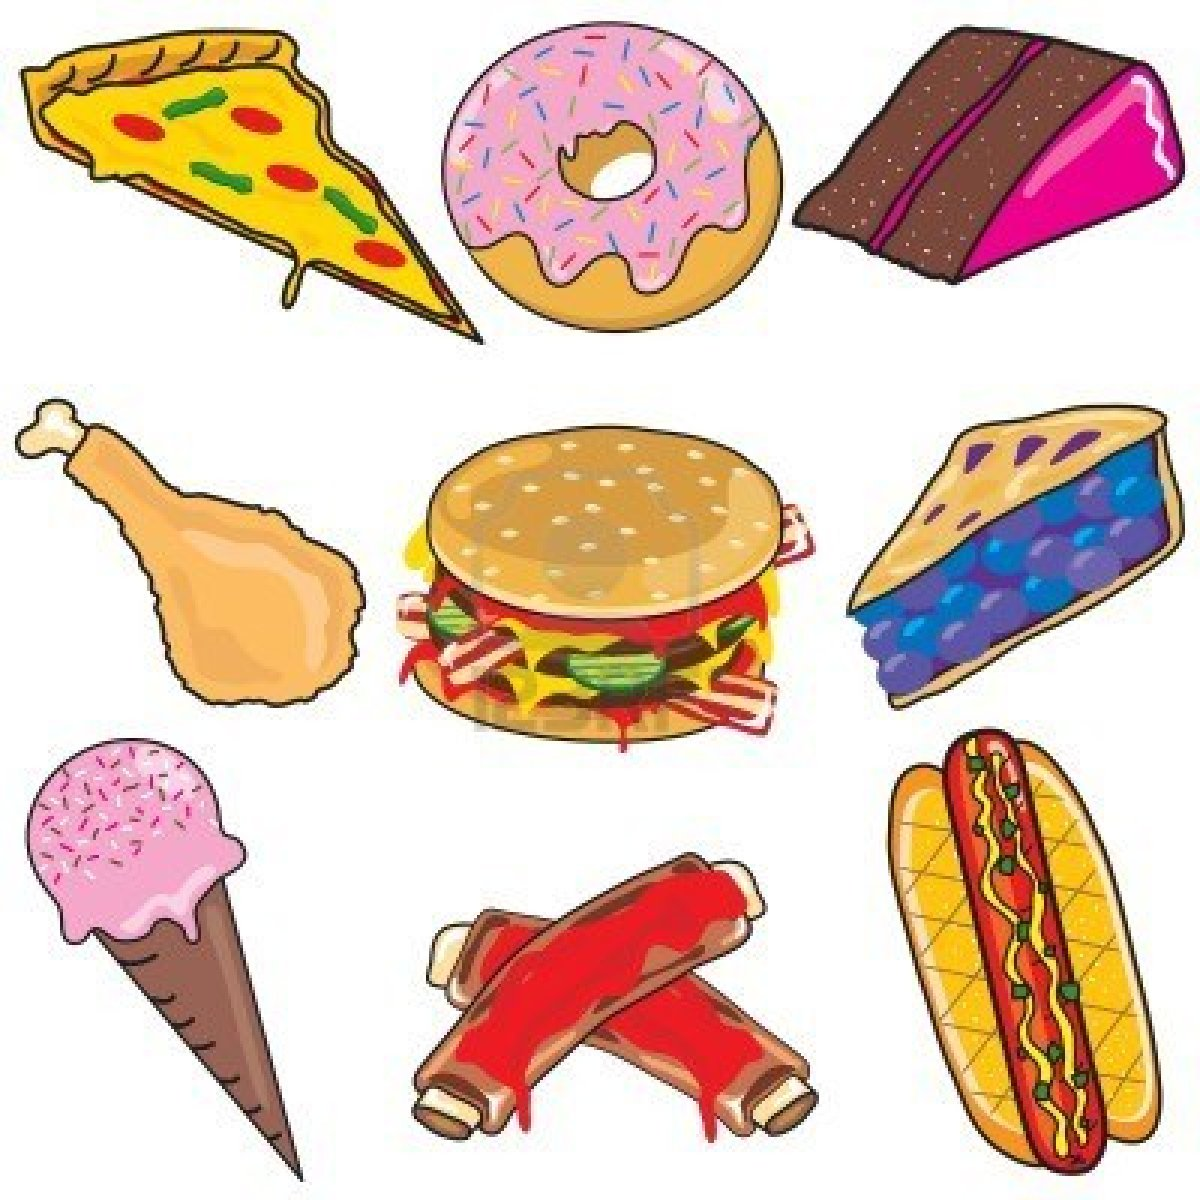 Processed food clipart.